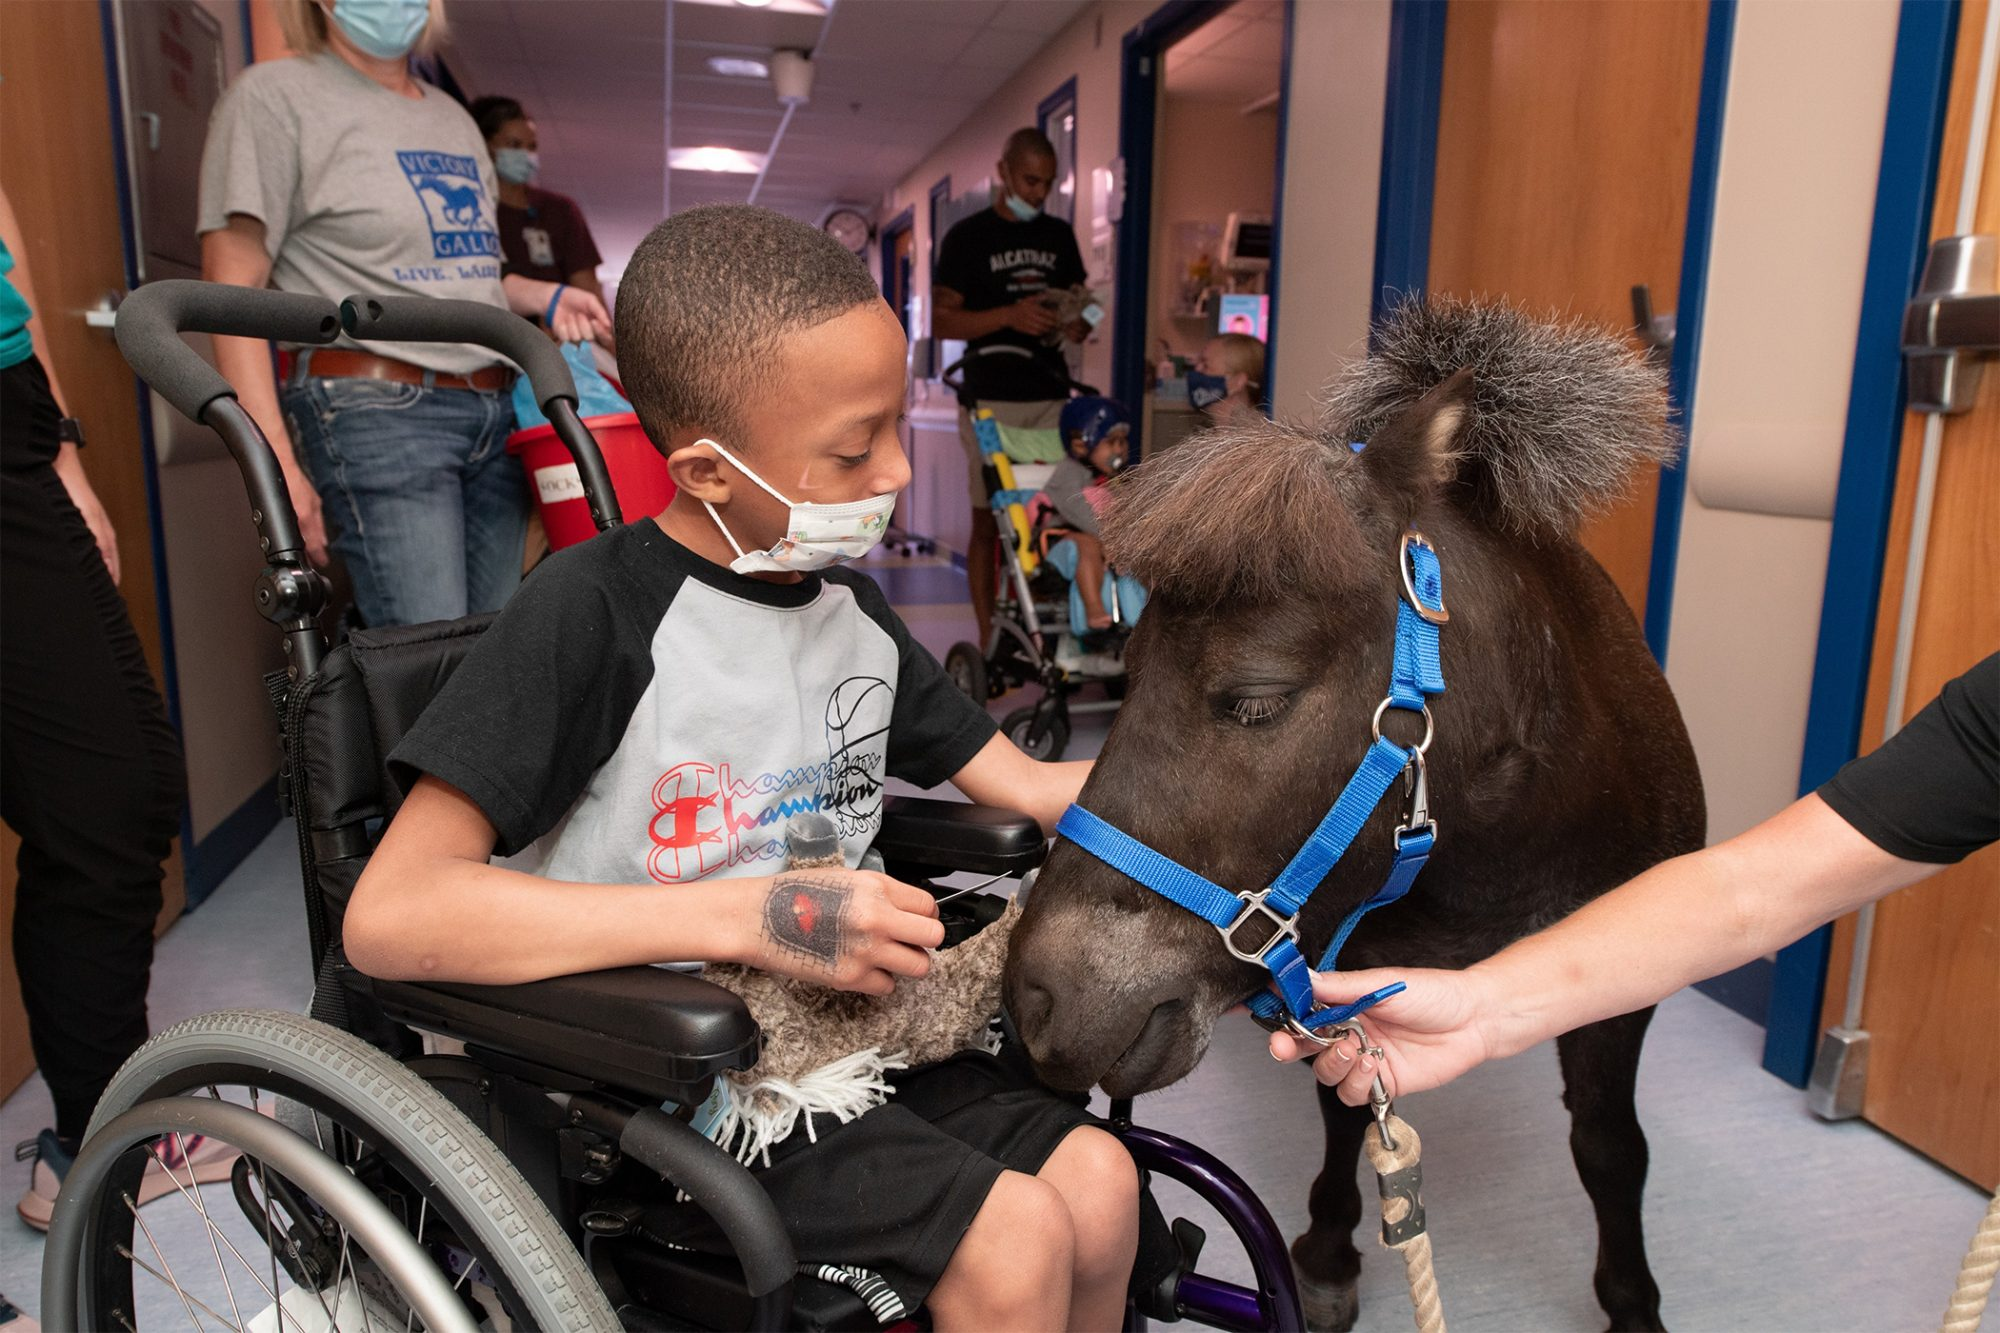 Therapy pony comforting boy in a wheelchair